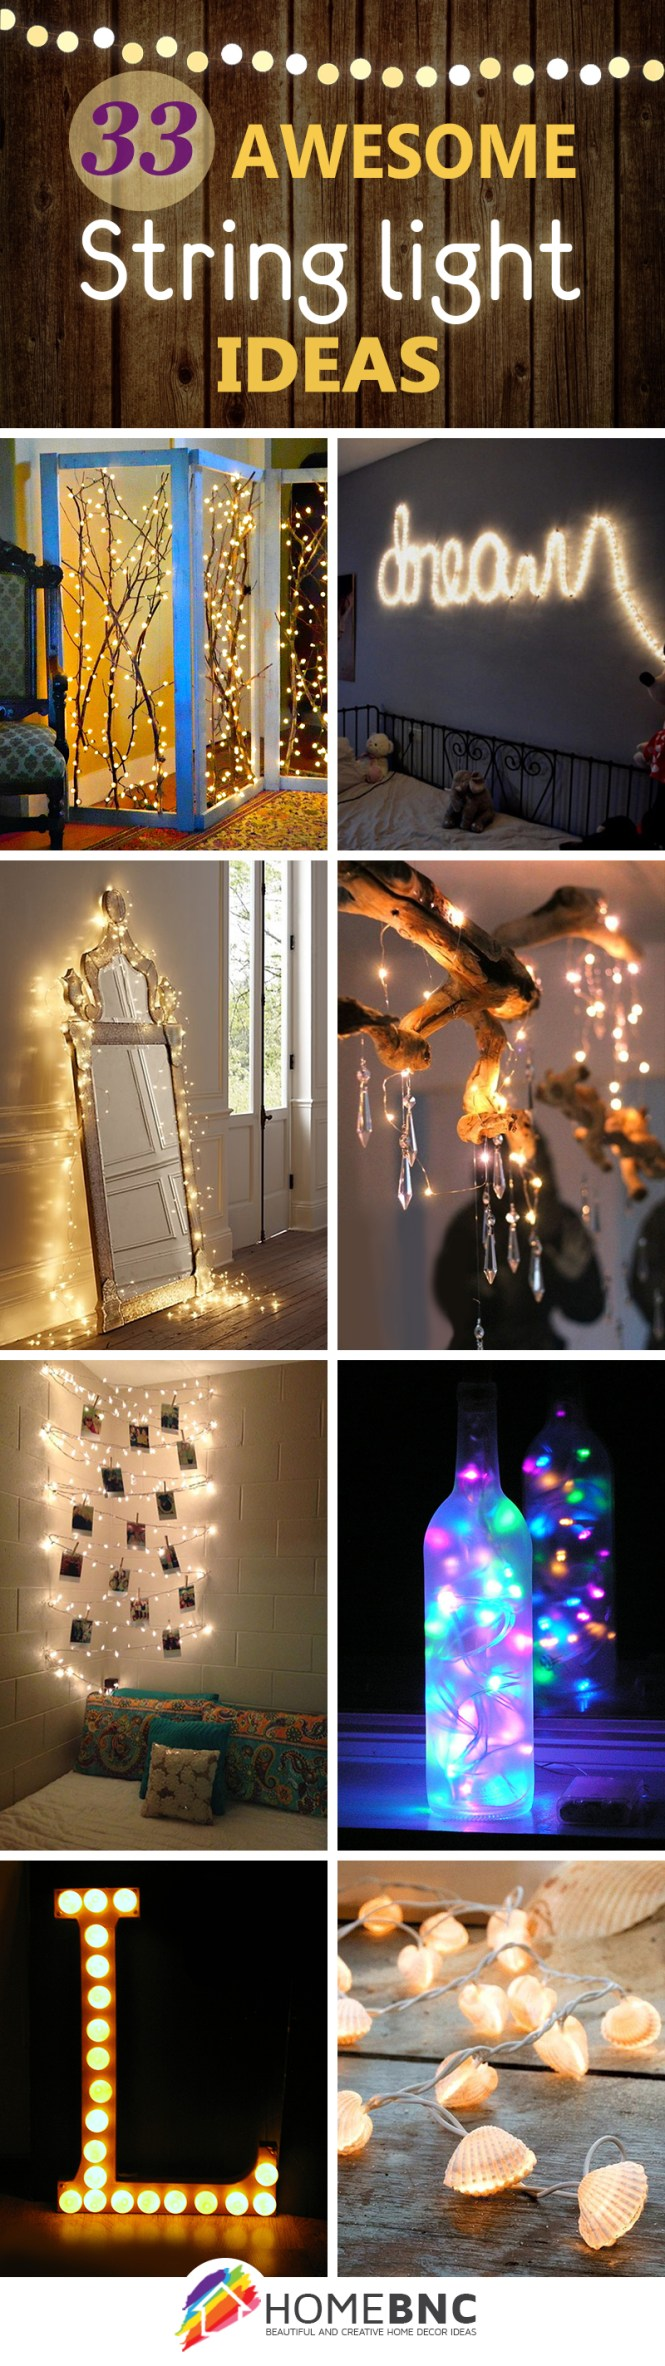 Simple String Lights For Patio Inspirational Home Decorating Interior Amazing Ideas To